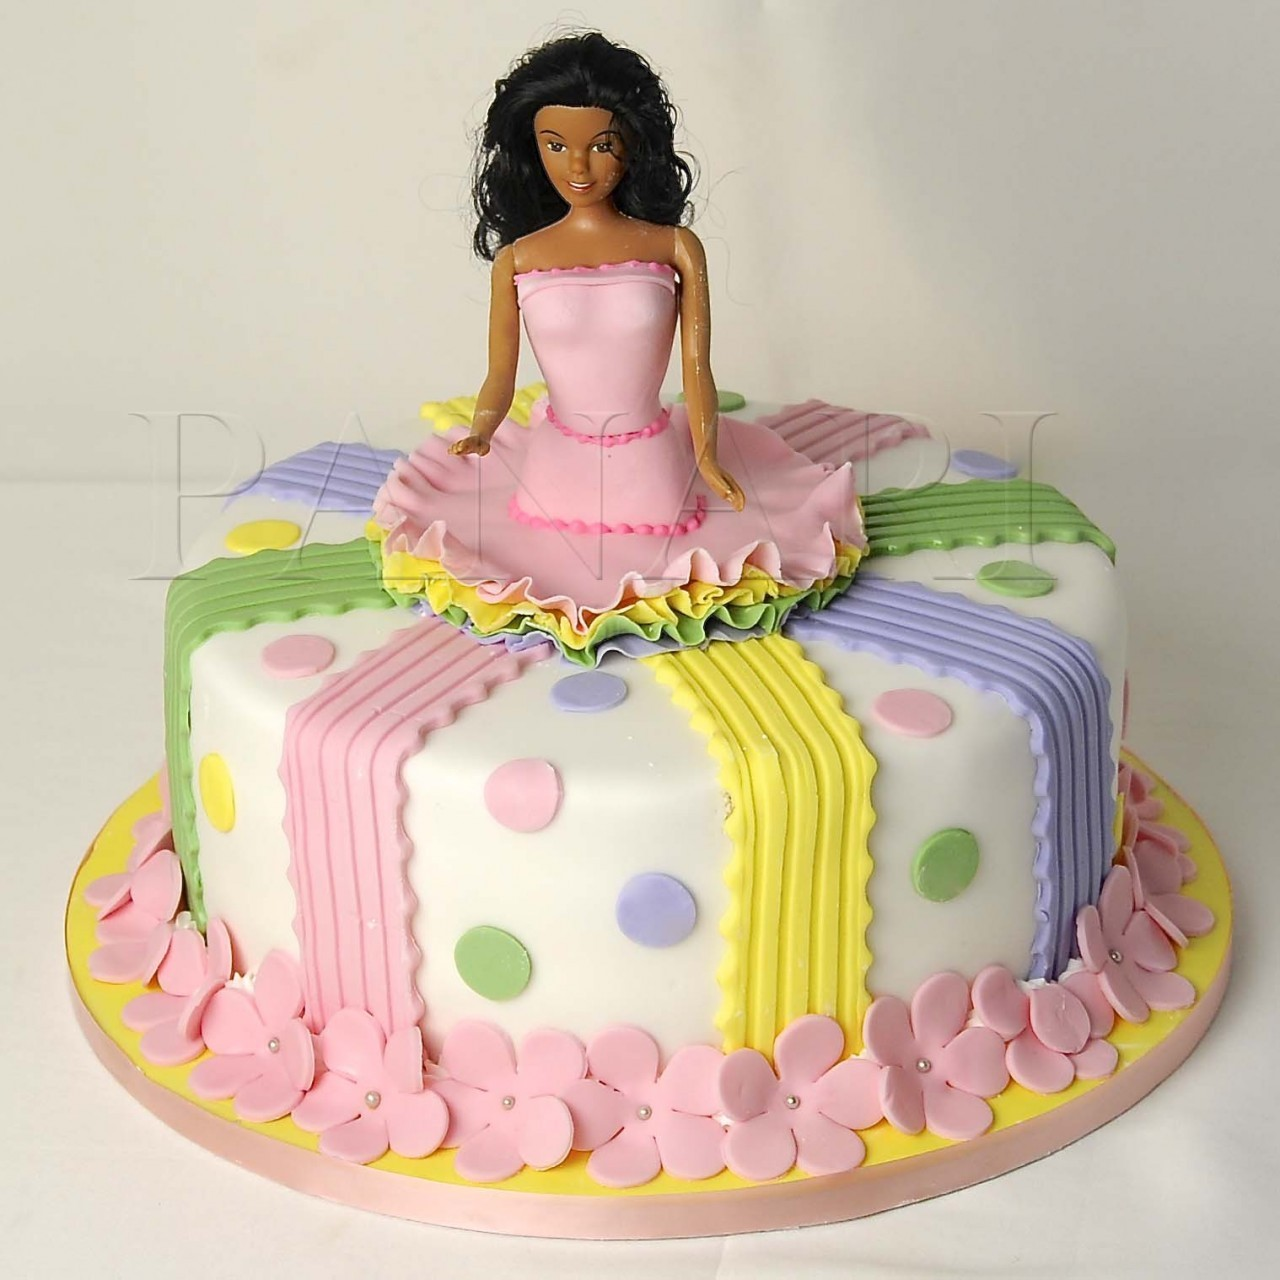 Barbie doll skirt cake